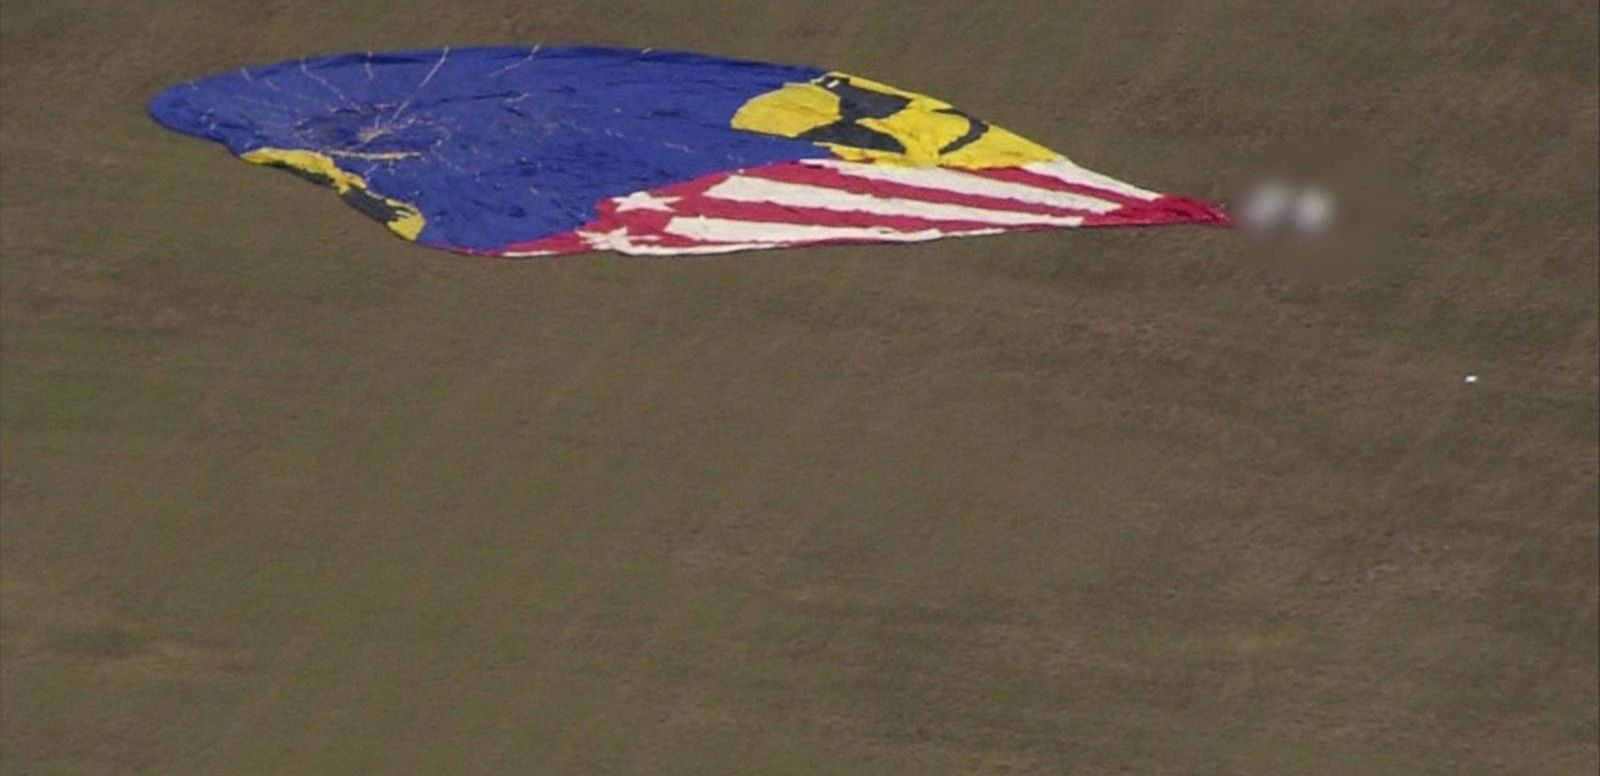 VIDEO: Hot Air Balloon Strikes Electric Lines, Killing 16 Passengers